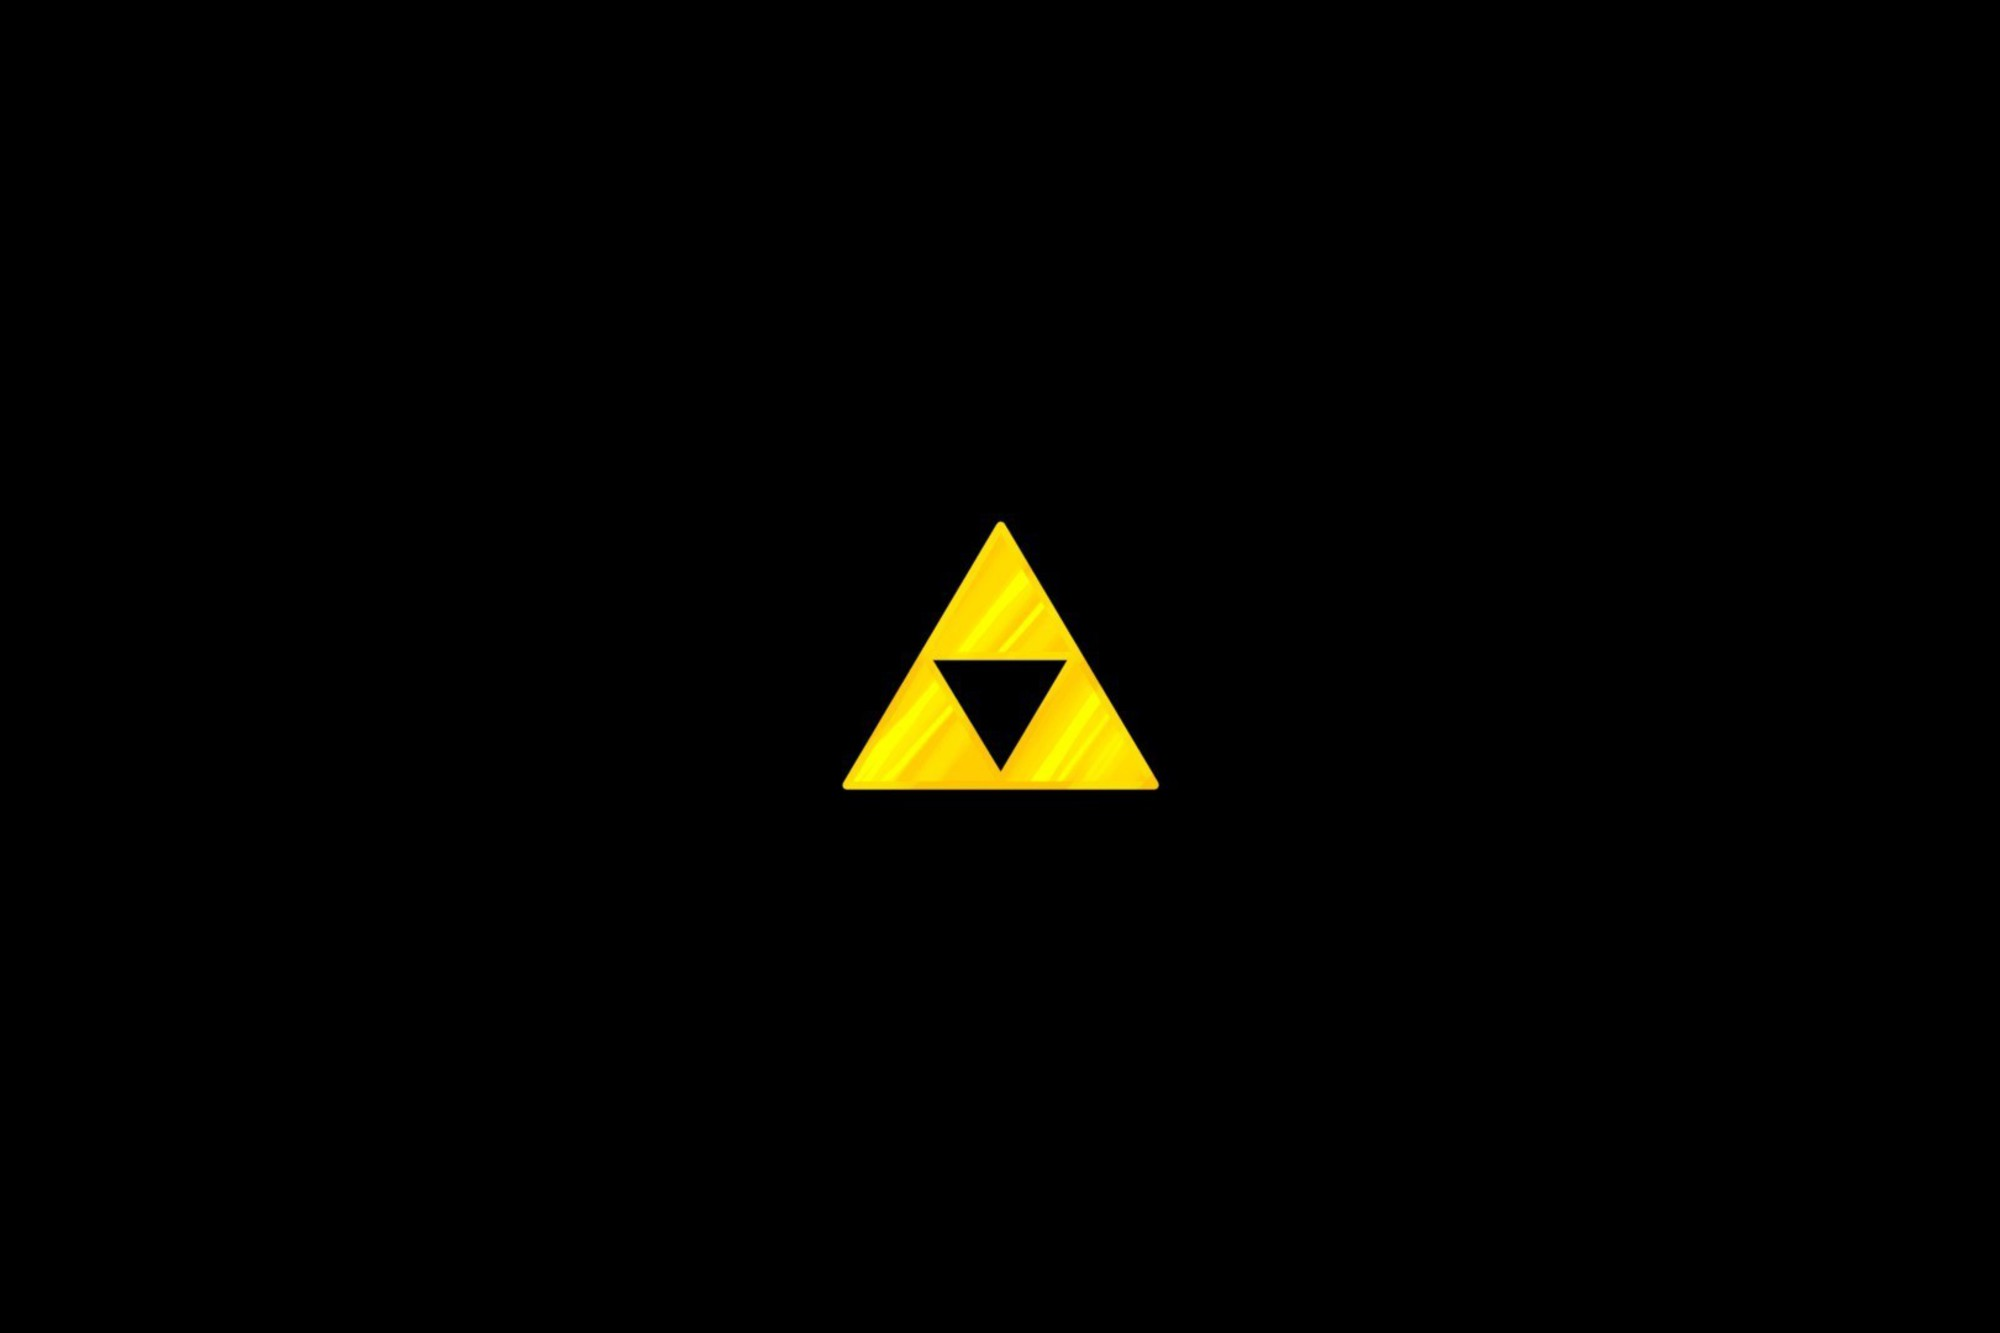 The Legend Of Zelda Wallpaper Hd The Legend Of Zelda Black Background Simple Triforce